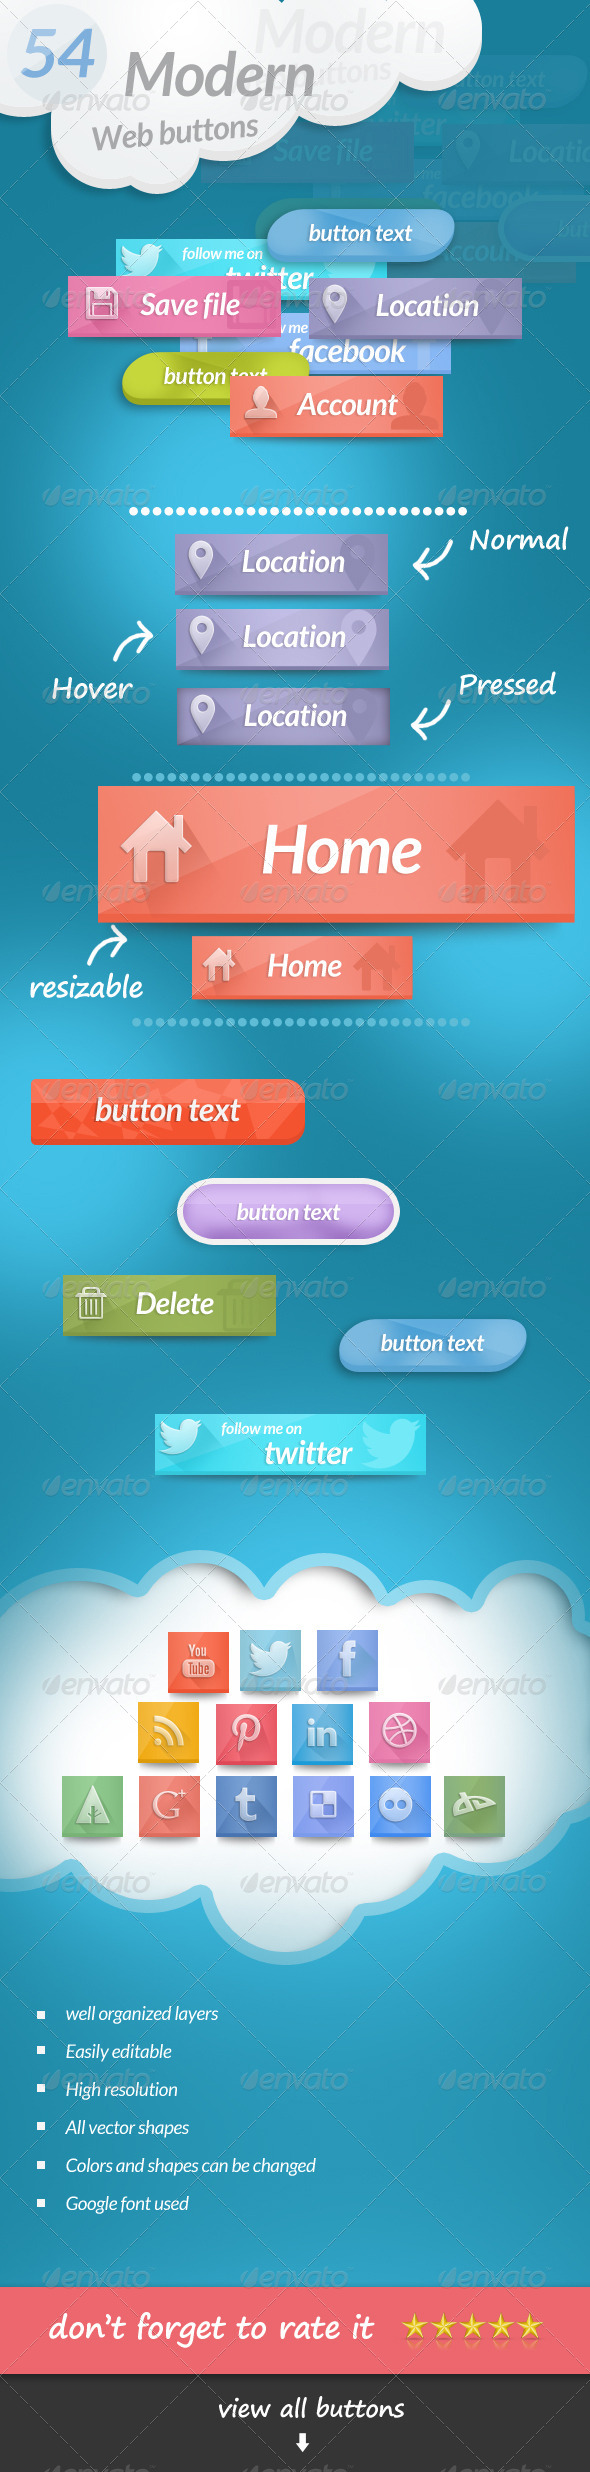 54 Modern Web Buttons - Buttons Web Elements